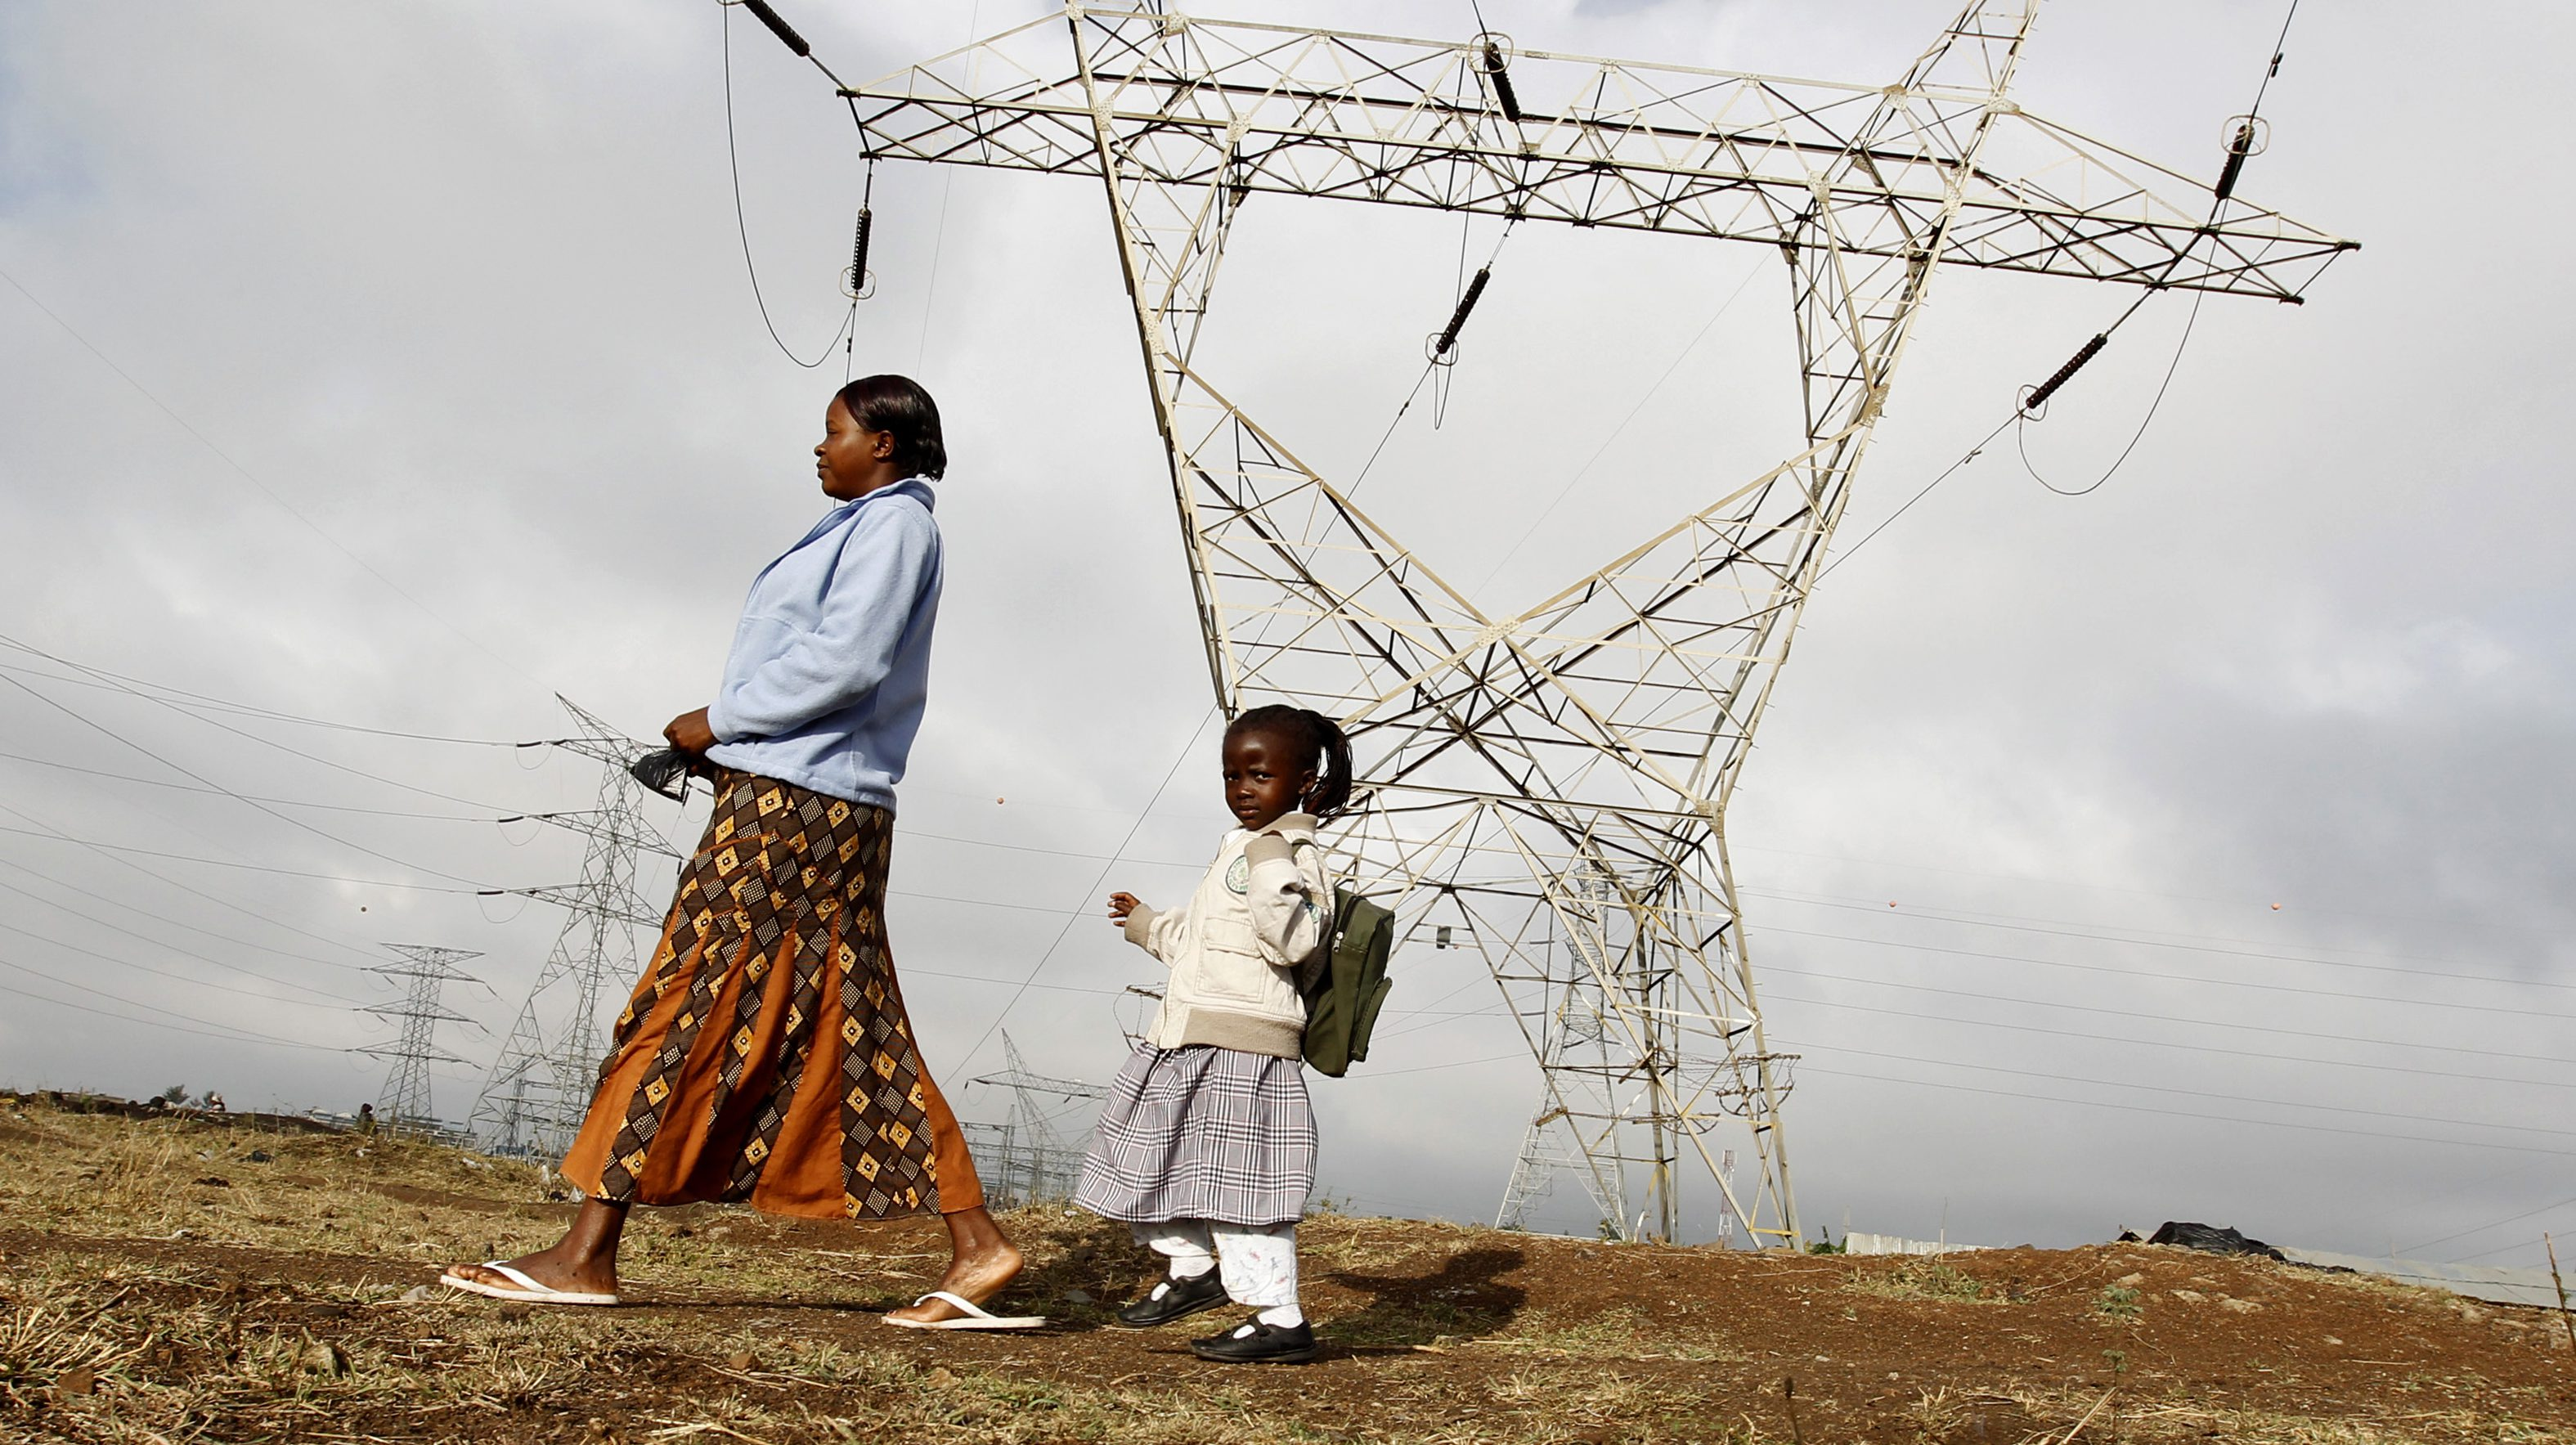 A woman walks her child to school past high voltage electrical pylons on the outskirts of Kenya's capital Nairobi, March 14, 2011. A union representing workers at Kenya's sole power supplier started on Monday a strike to protest unfair employment terms, its secretary general said. Kenya power has been involved in a protracted dispute with Kenya Electrical Trade and Allied Workers Union (KETAWU), which claims that more than a third of workers are on casual terms, in violation of the country's labour law.